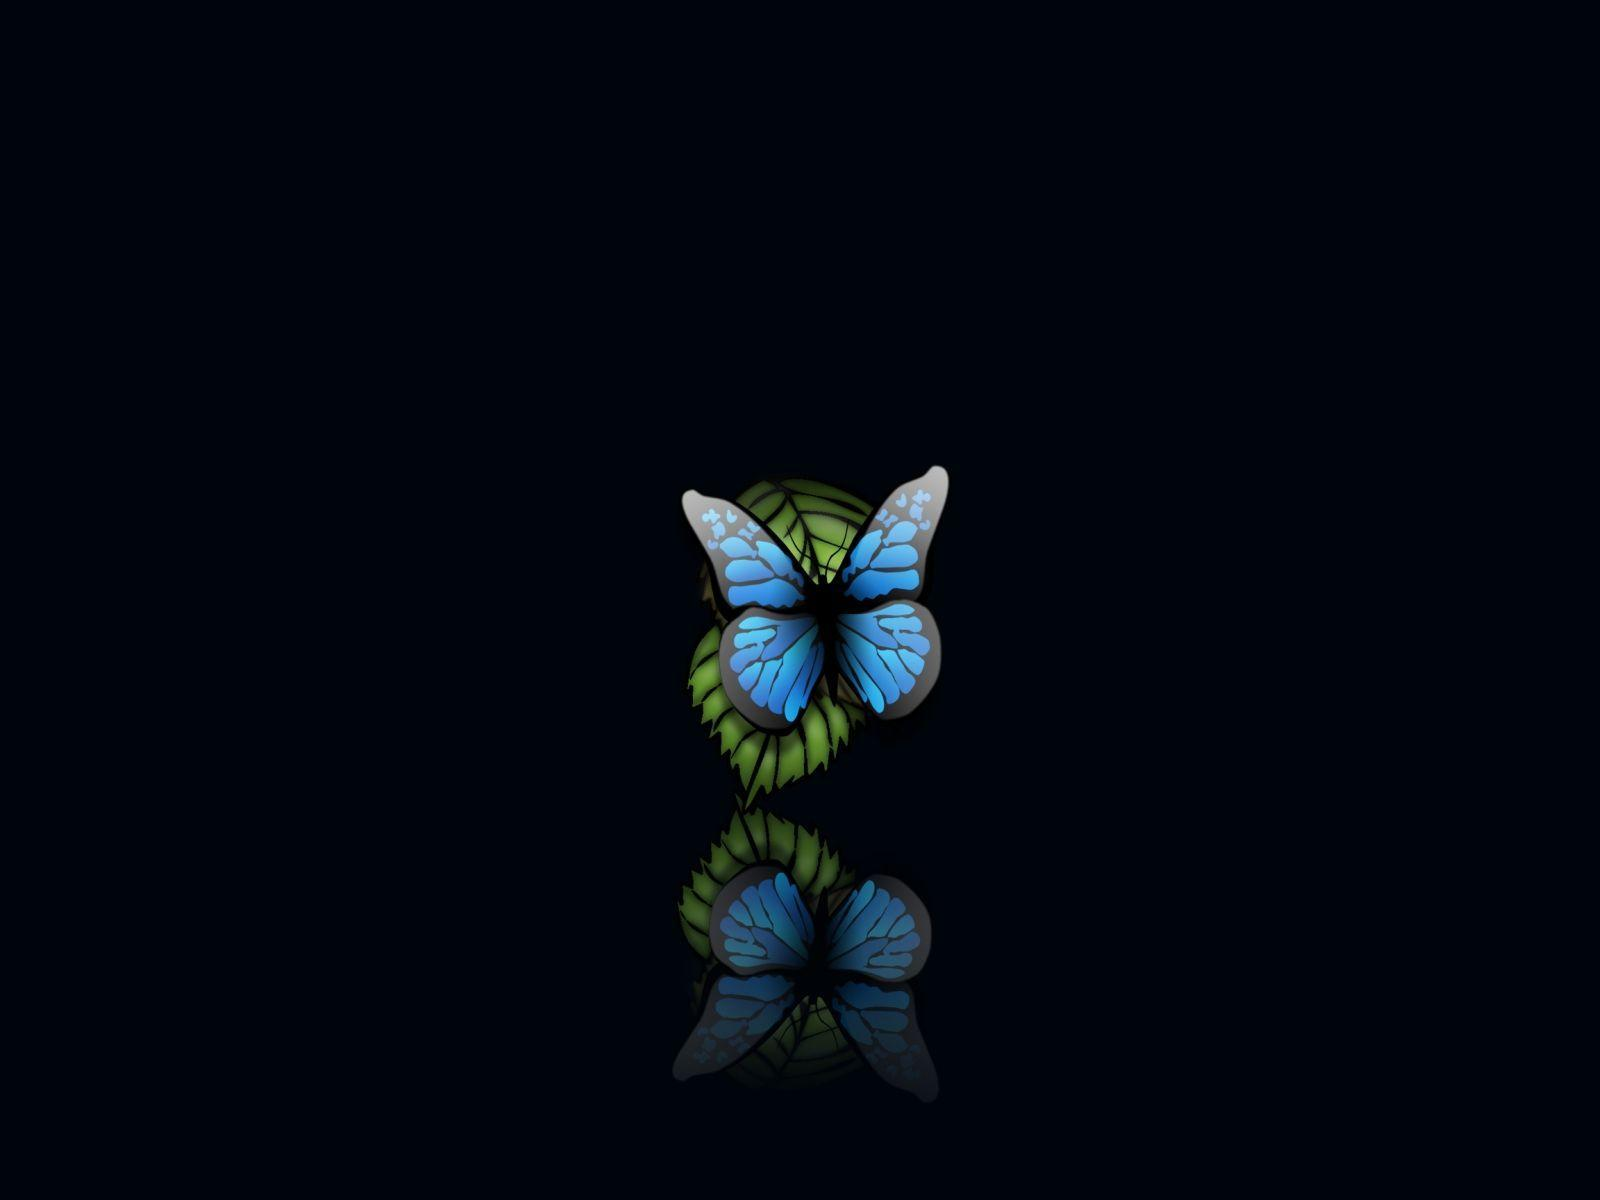 Butterfly wallpapers hd with beauty,butterfly wallpapers image with